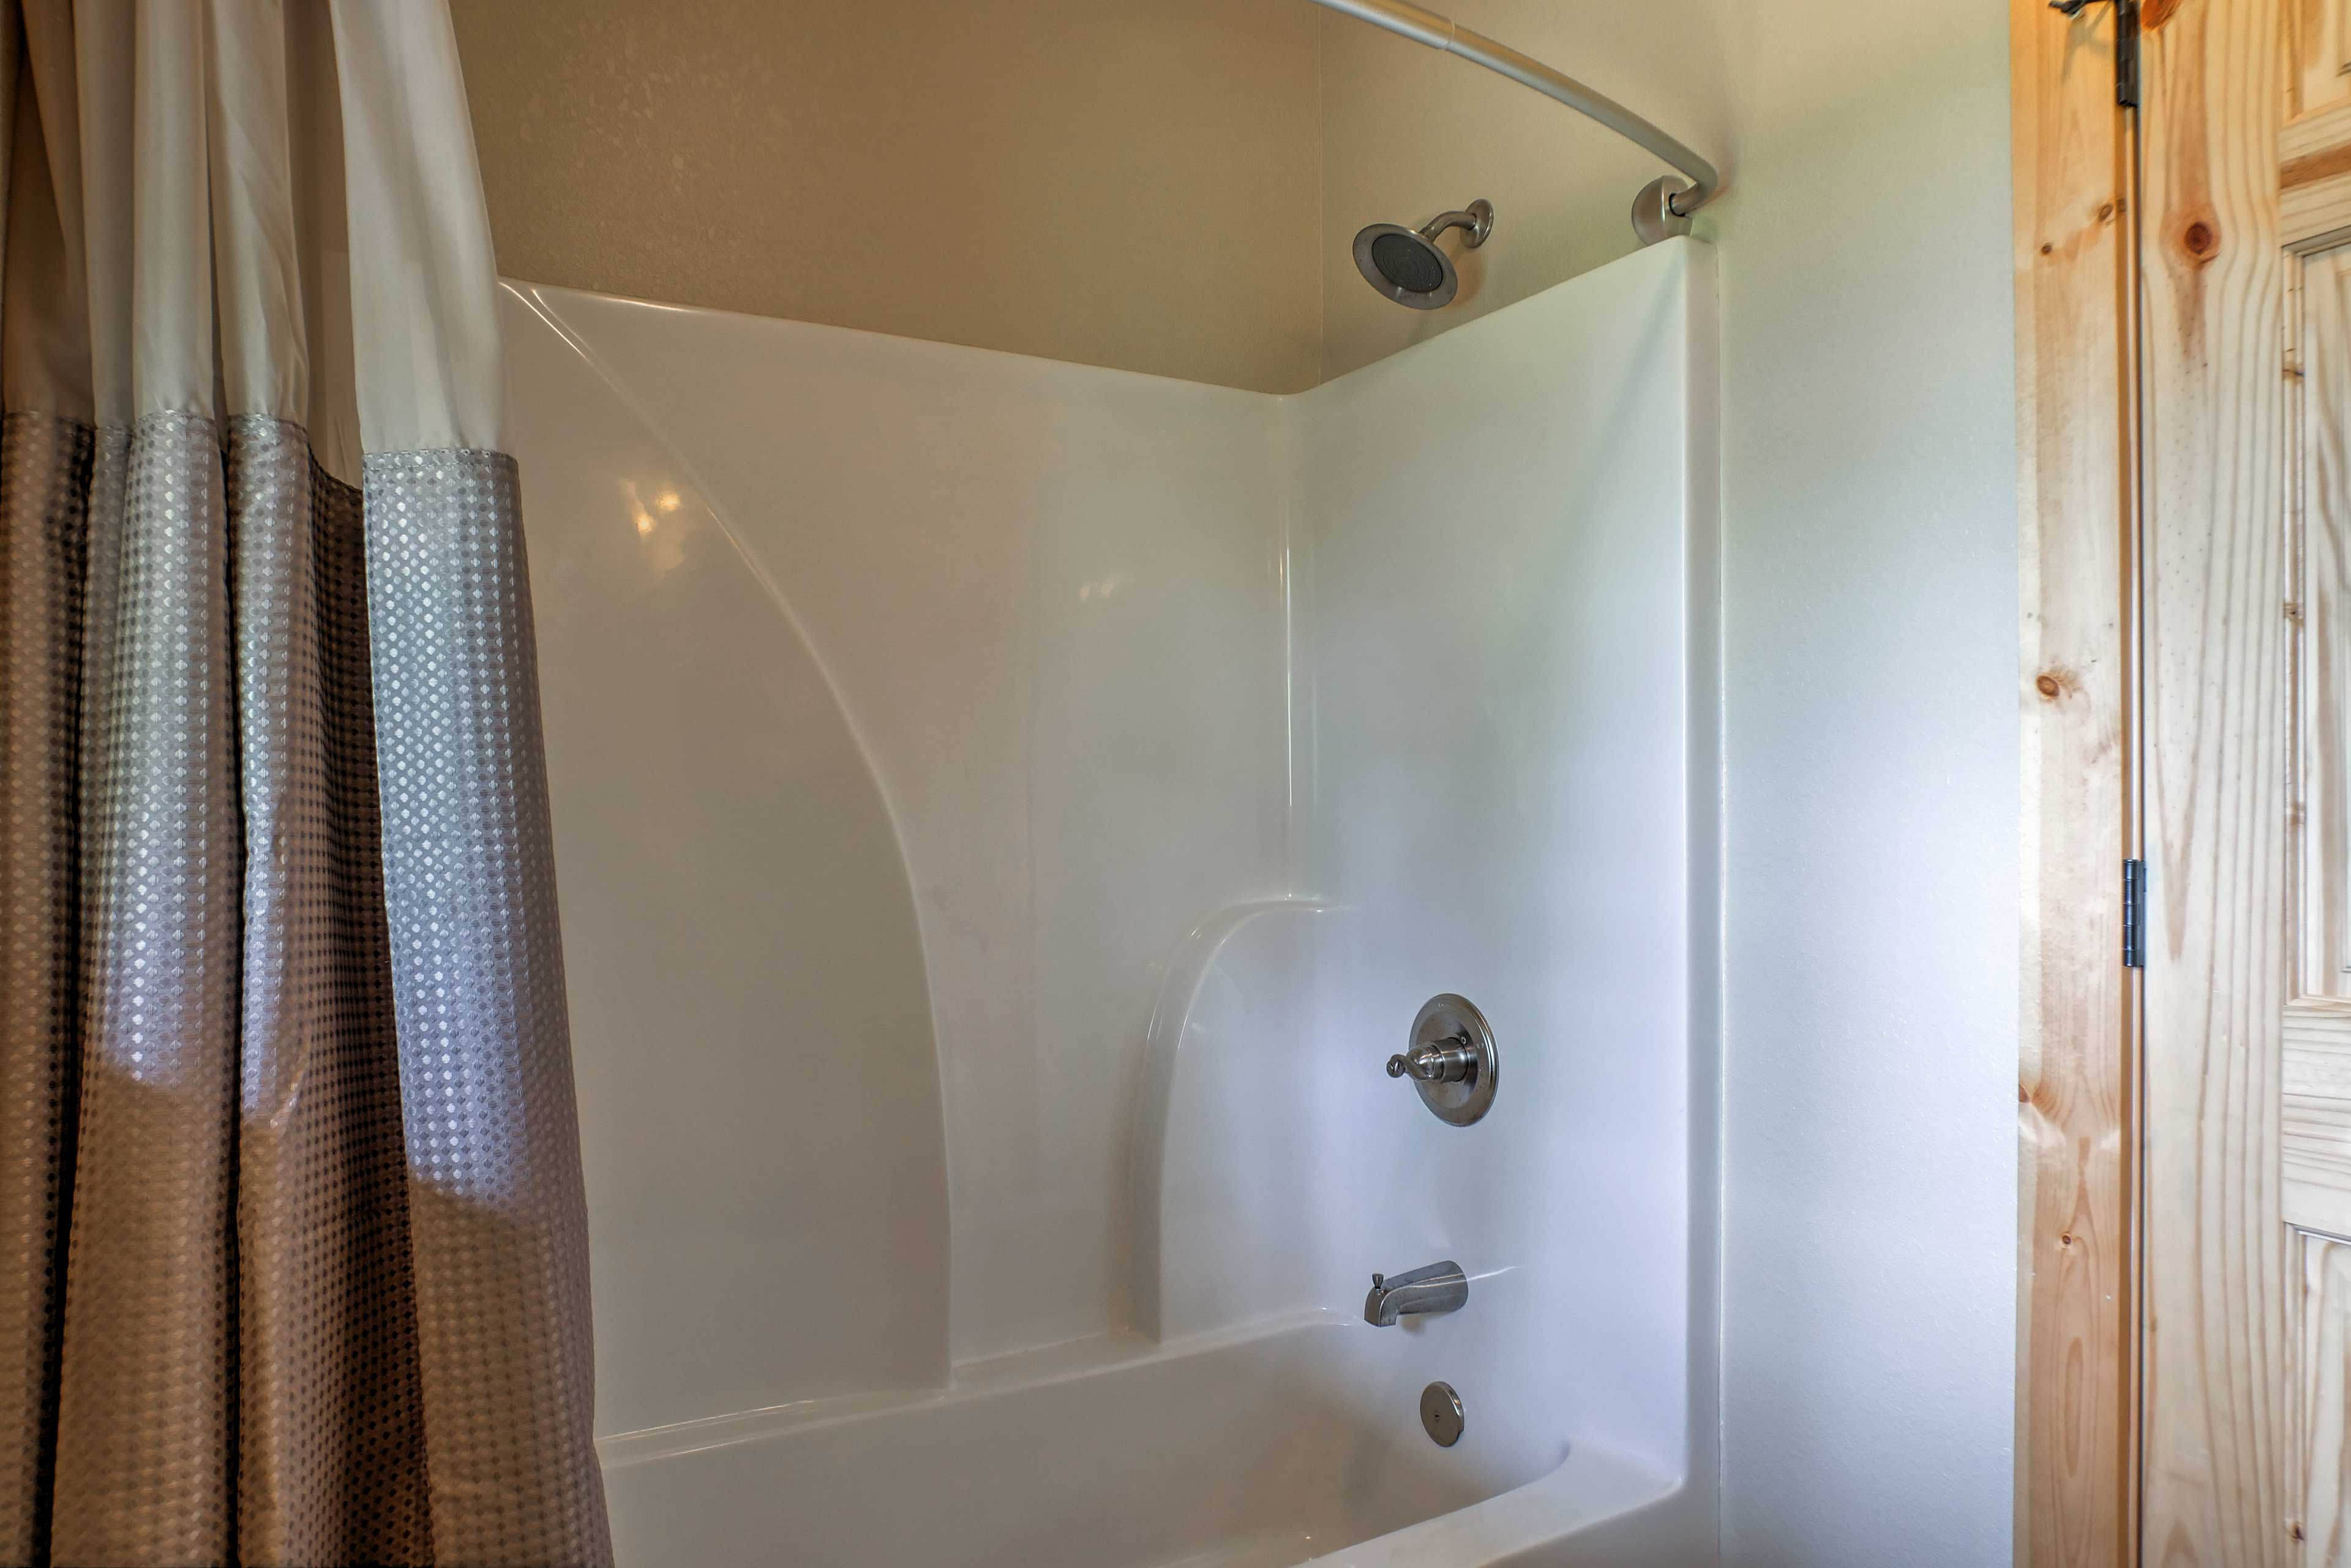 Take a relaxing rinse in the shower/tub combo of the third bathroom.